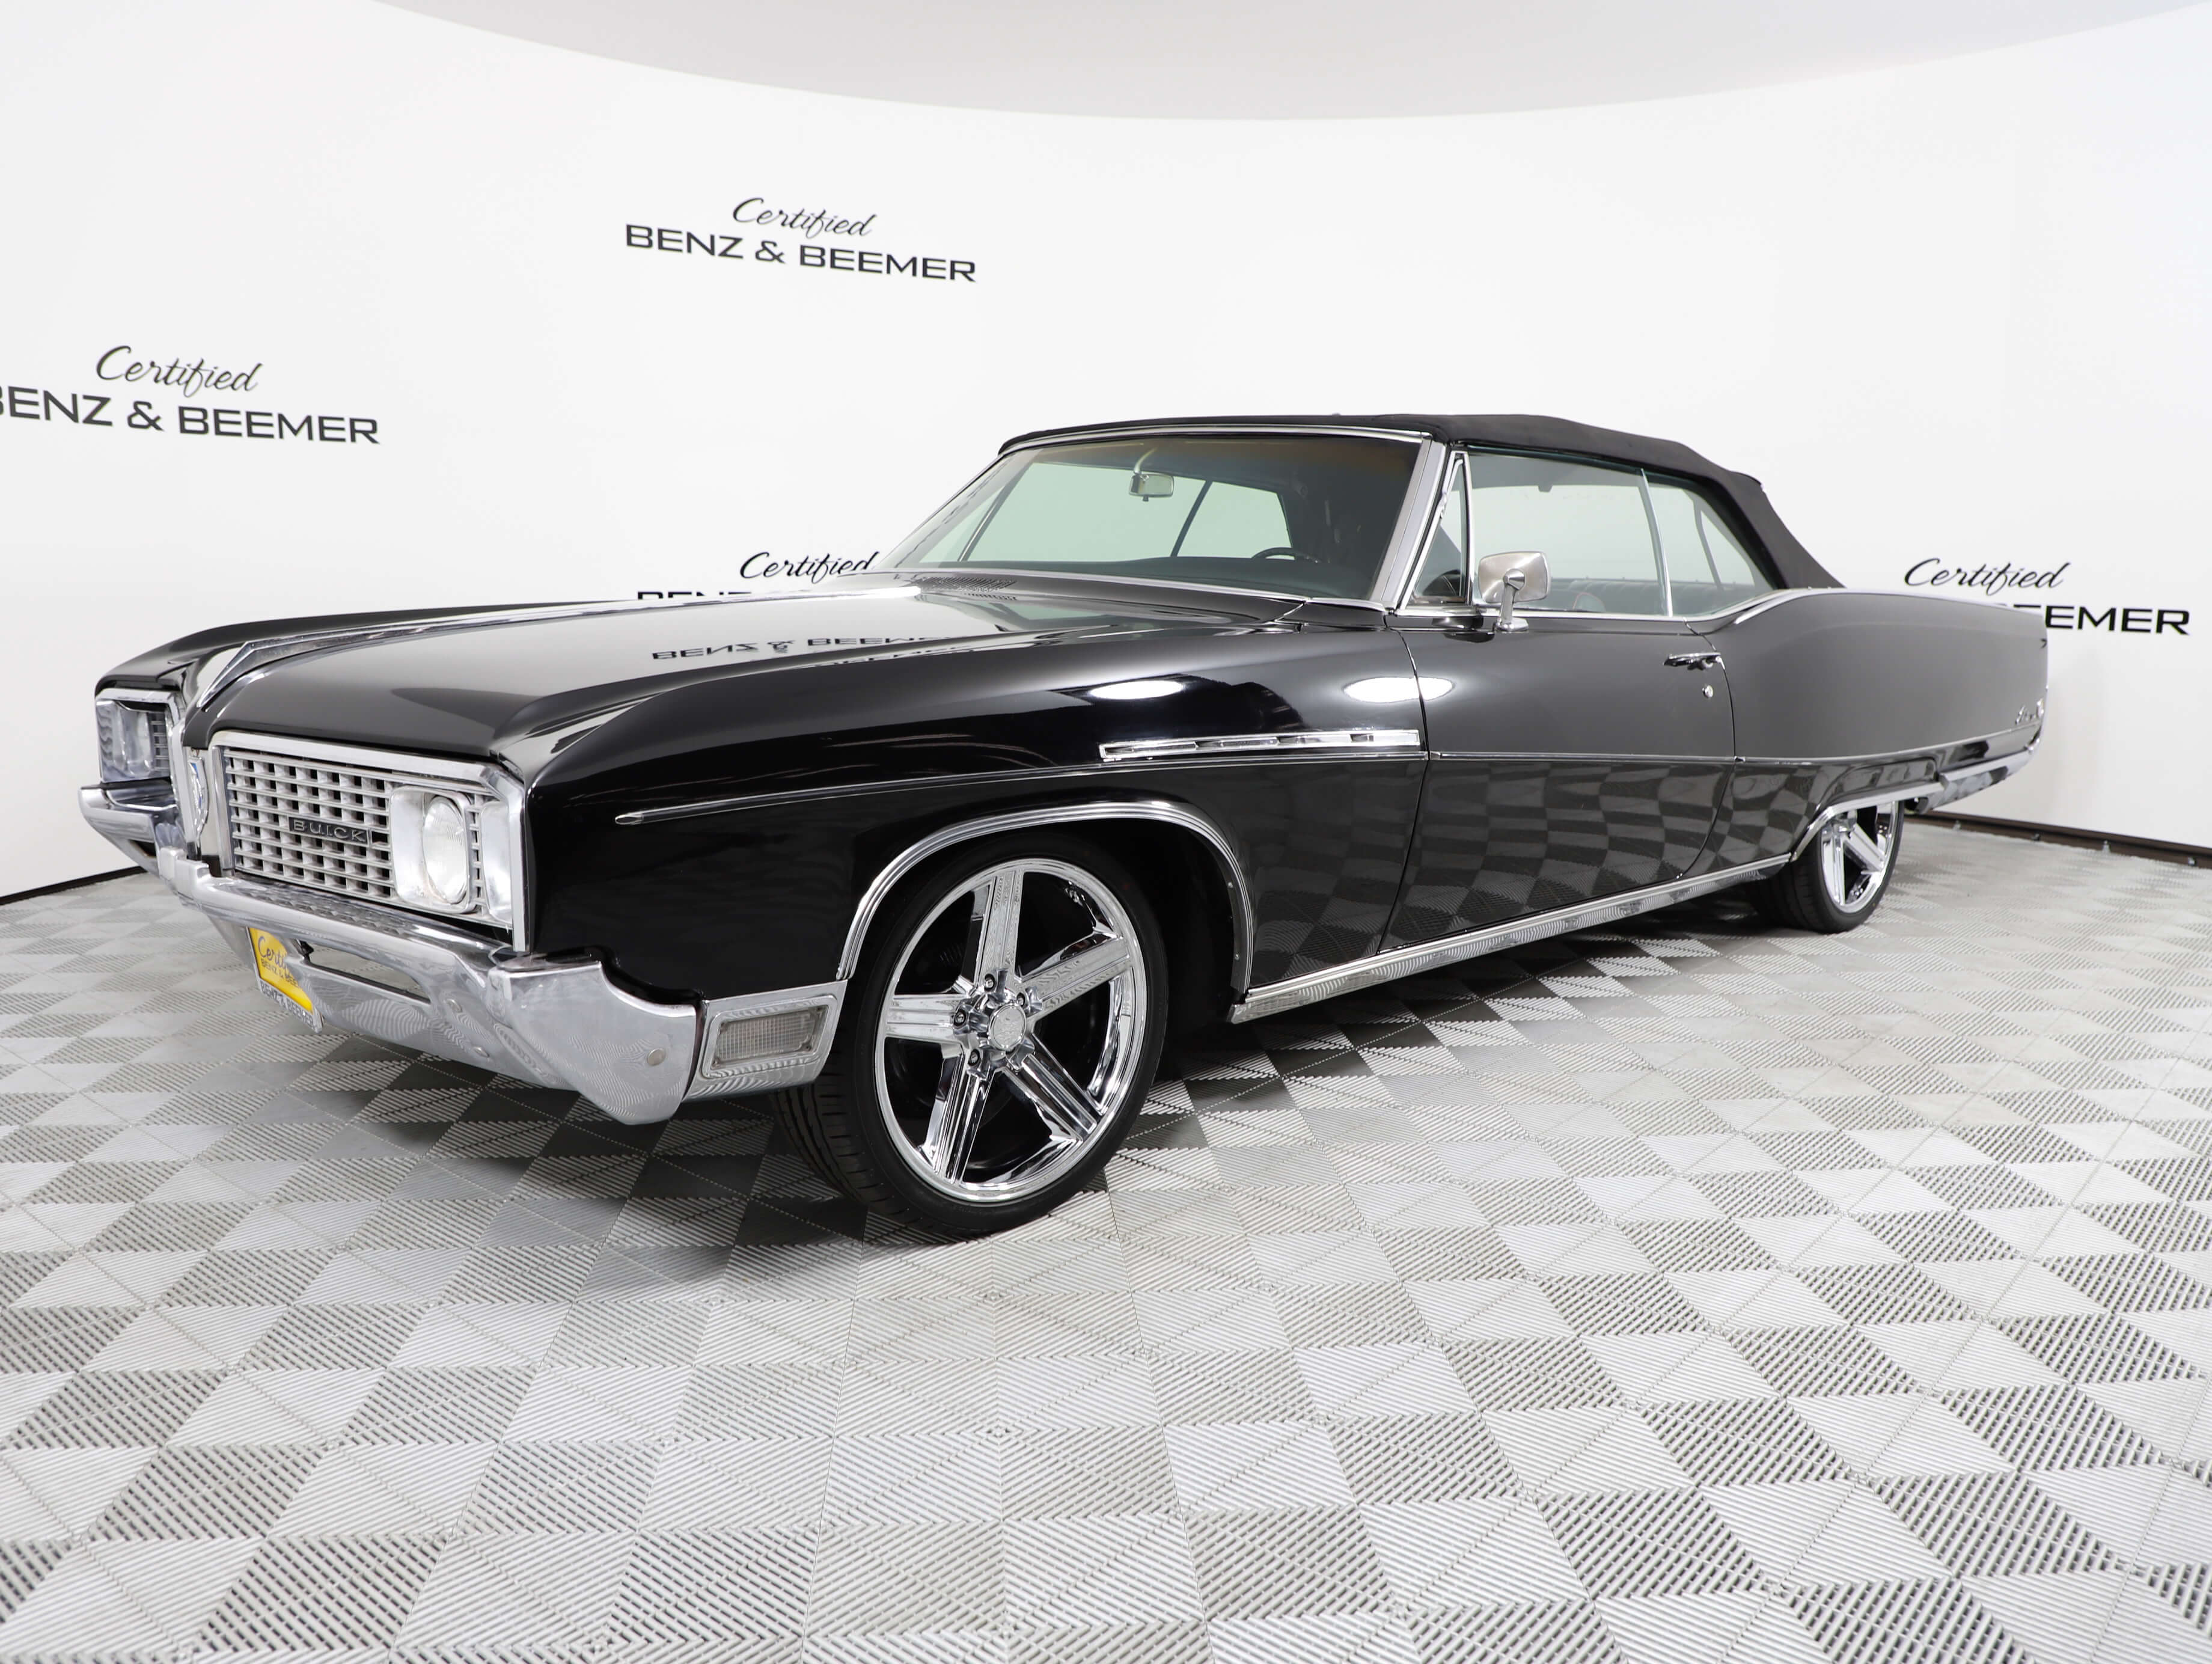 Certified Benz & Beemer - Used 1968 Buick Electra